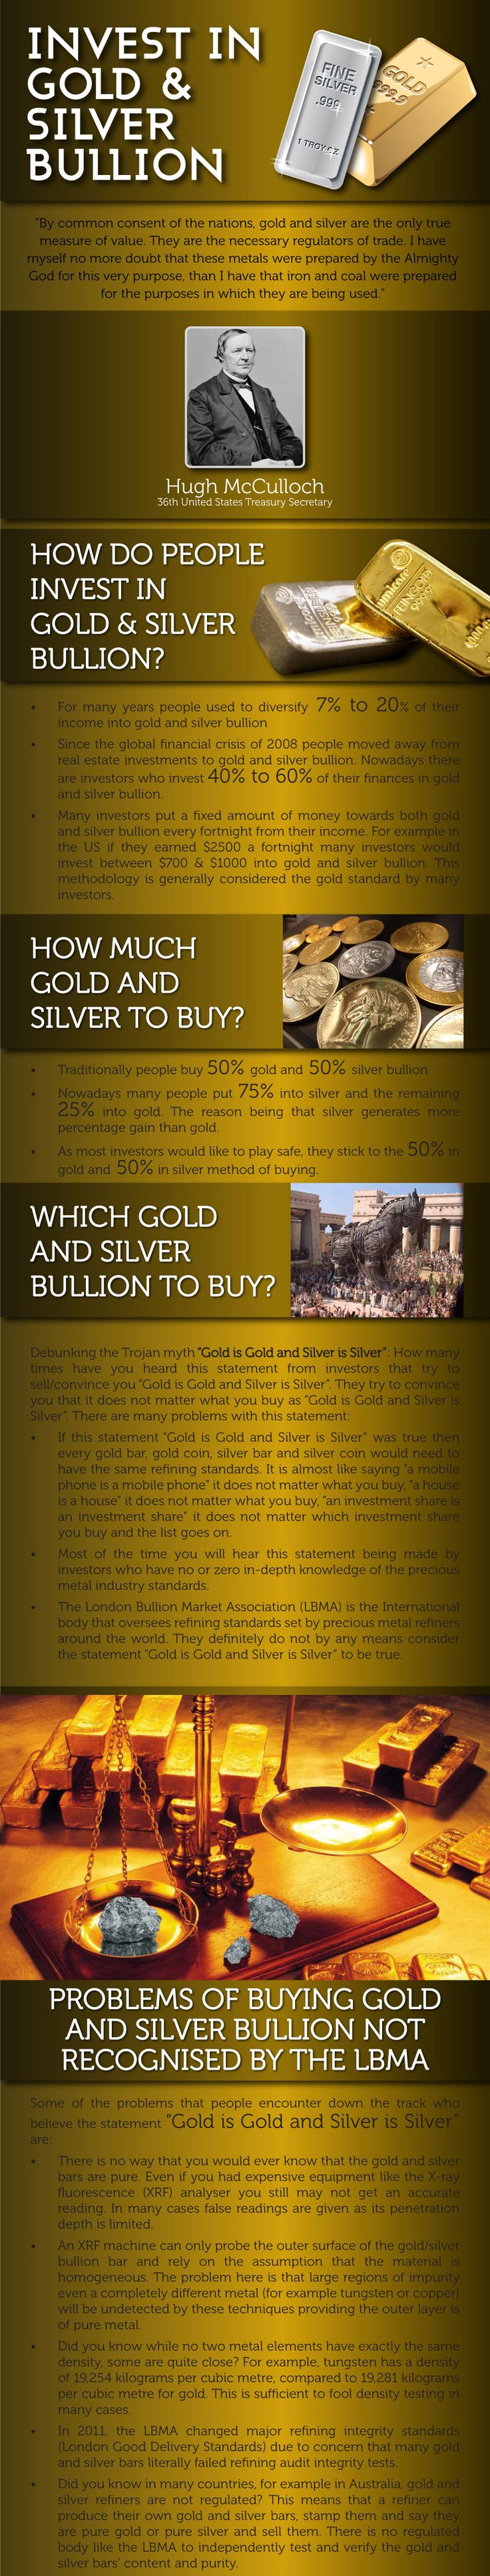 Protect yourself with gold Karatbars, 24-karat currency-grade gold bullion, save a gram at a time, affordable and convenient. Gold is the asset that has proven the test of time against inflation & bankruptcy & is accepted all over the world. Karatbars has an Affiliate Program that offers free gold & monetary compensation and make great gifts. http://www.karatbars.com/landing/?s=ewise10